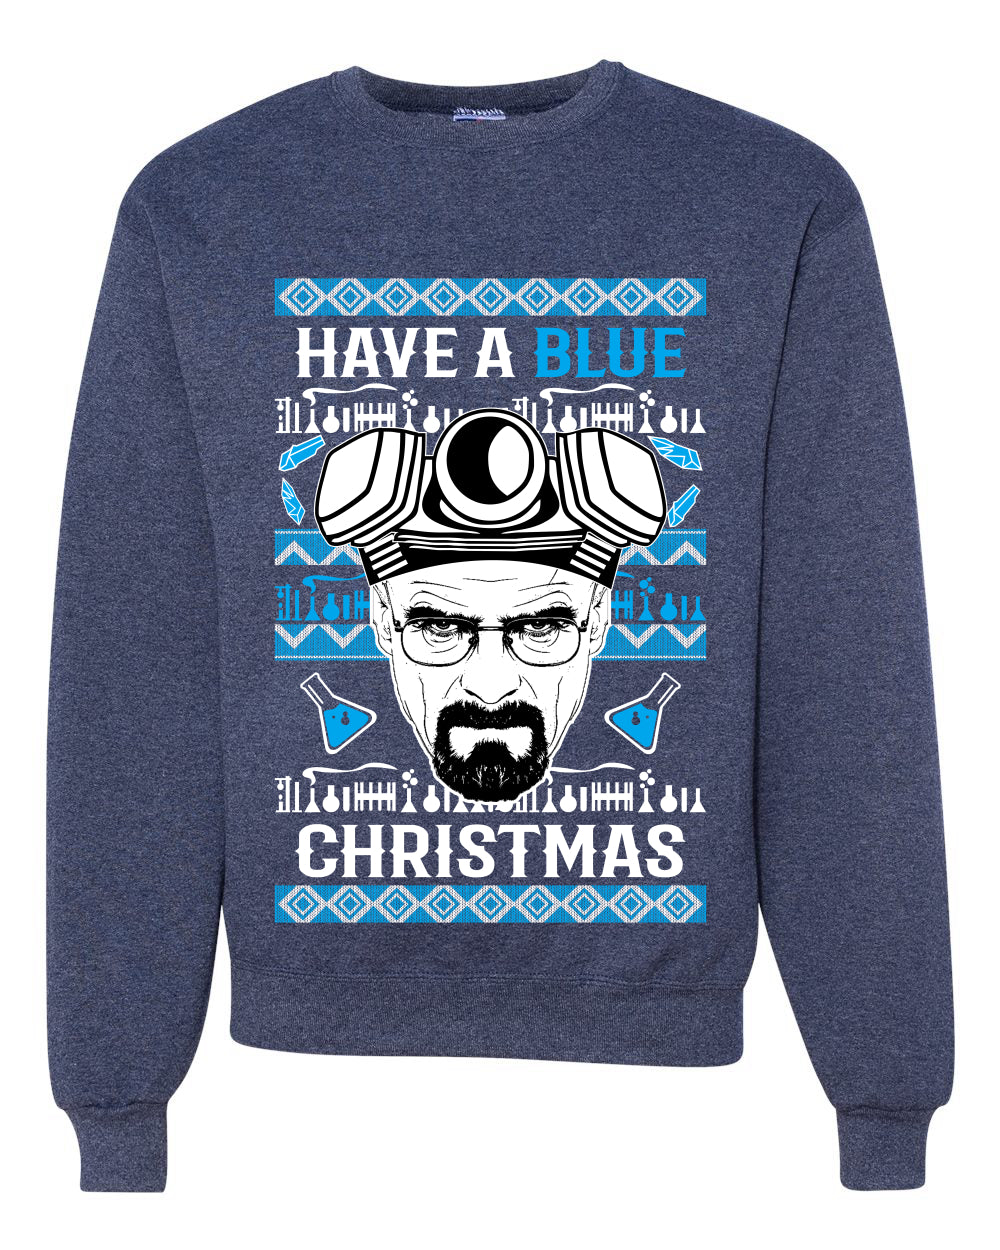 Have a Blue Christmas Walter Breaking TV Christmas Unisex Crewneck Graphic Sweatshirt